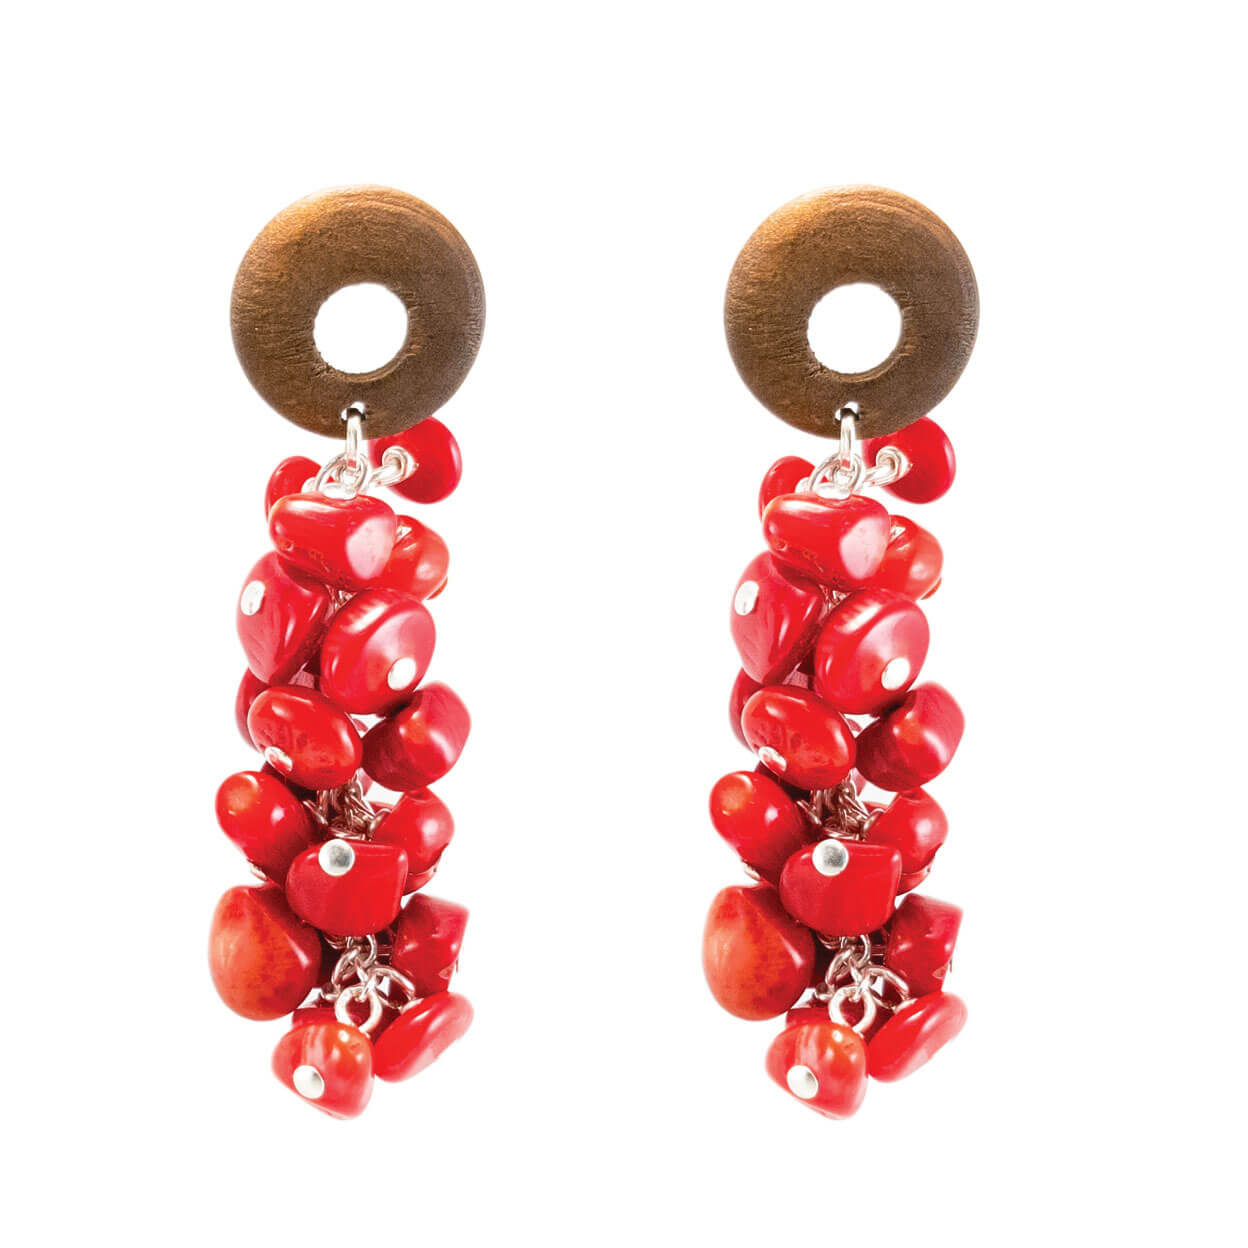 Tropical red coral and wood dangle earrings on silver chain